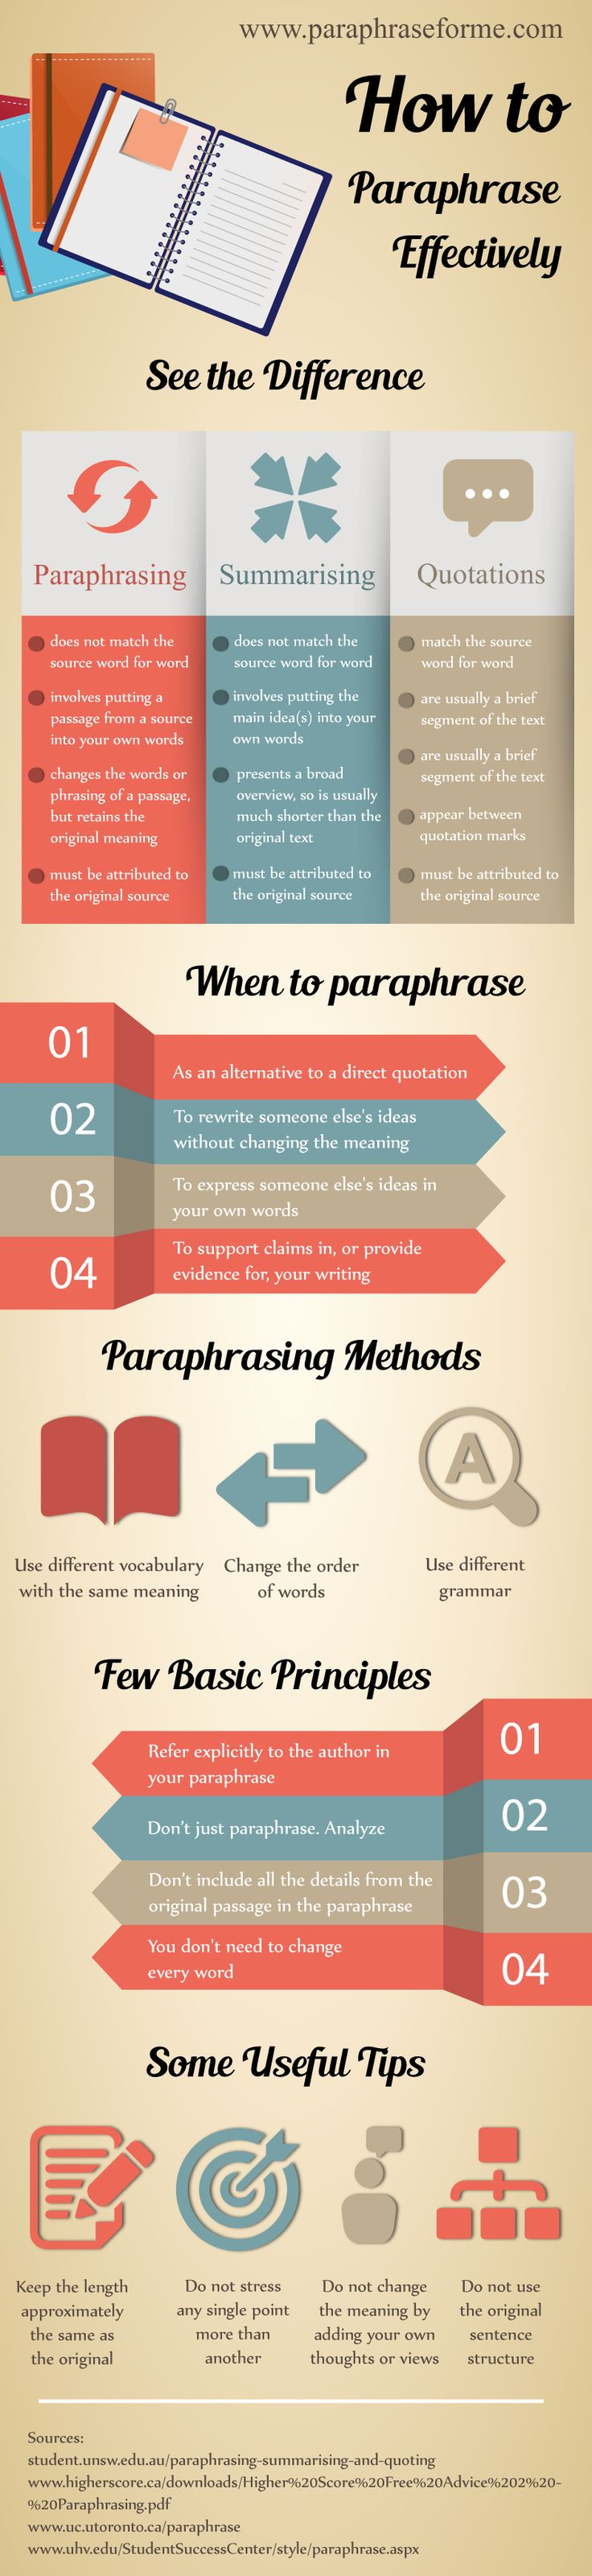 How To Paraphrase Effectively Infographic